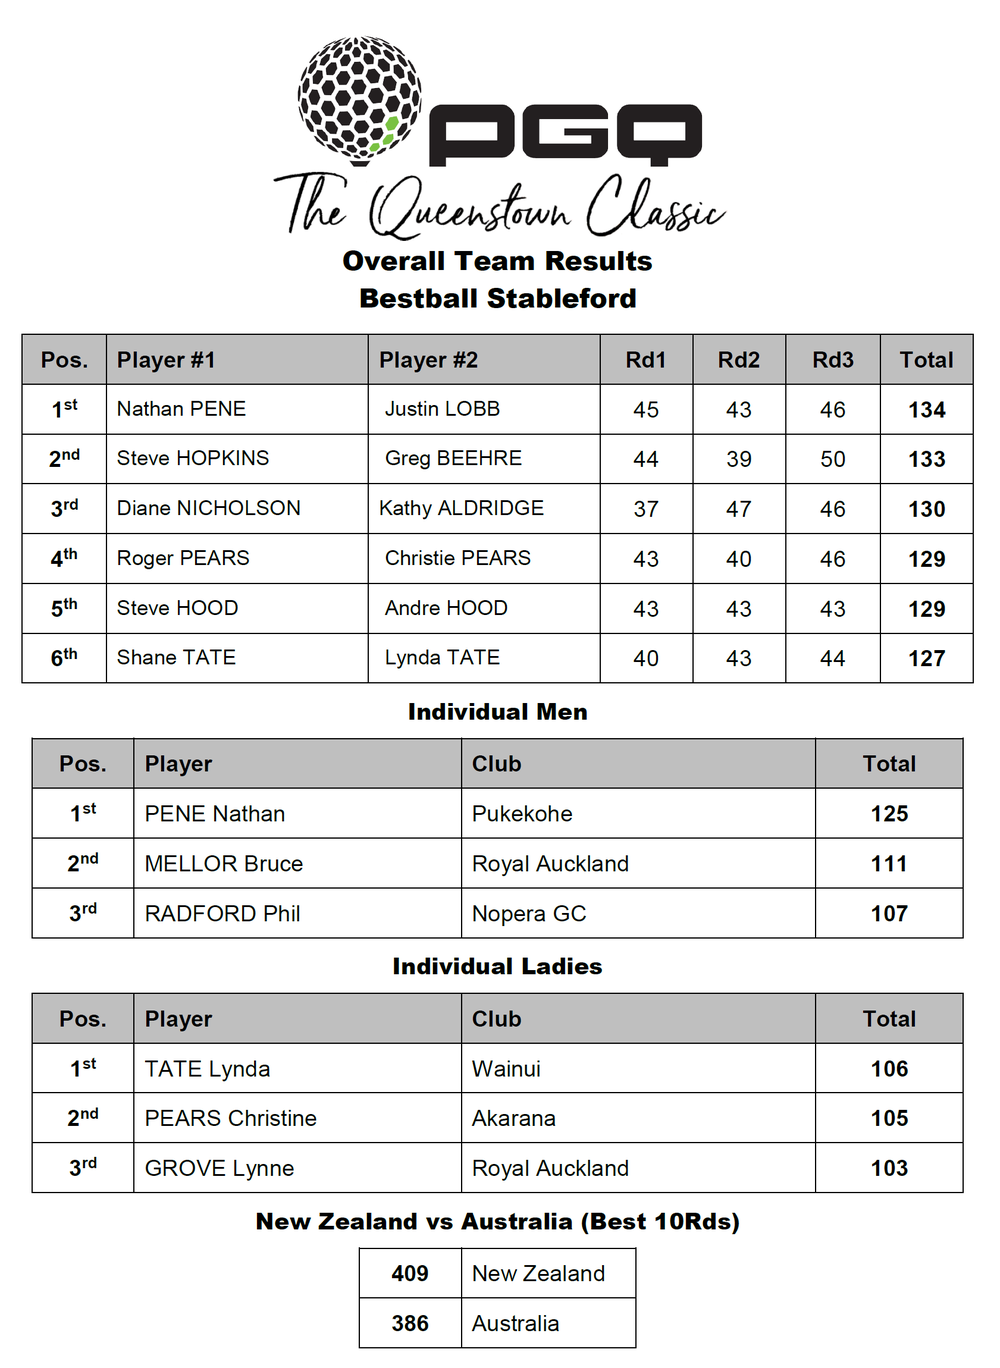 The Queenstown Classic Final Results